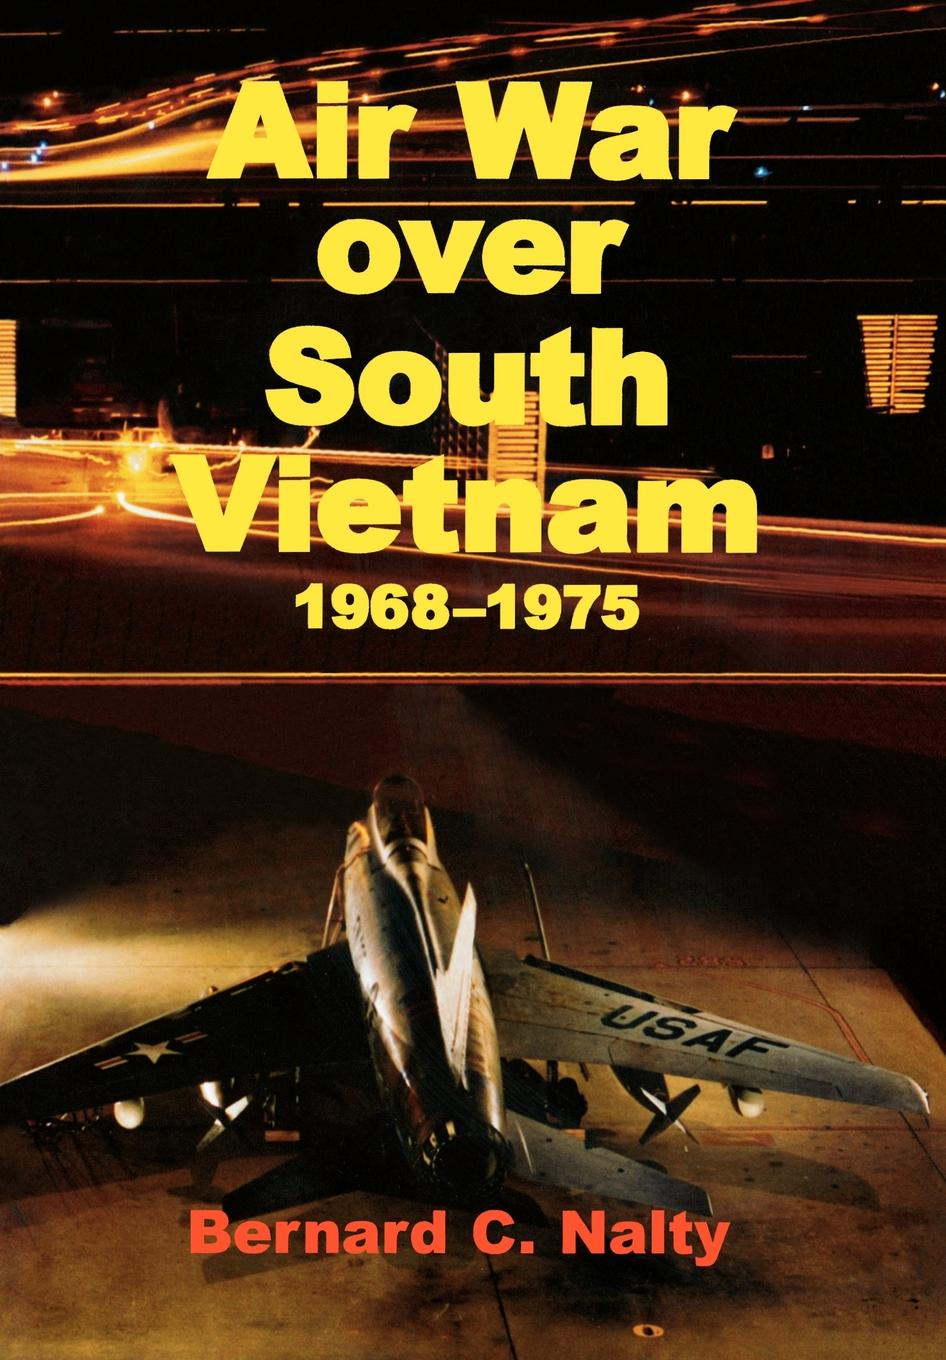 Bernard C. Nalty, Air Force History Museums Program Air War over South Vietnam 1968-1975 history and philosophy of physics in the south cone